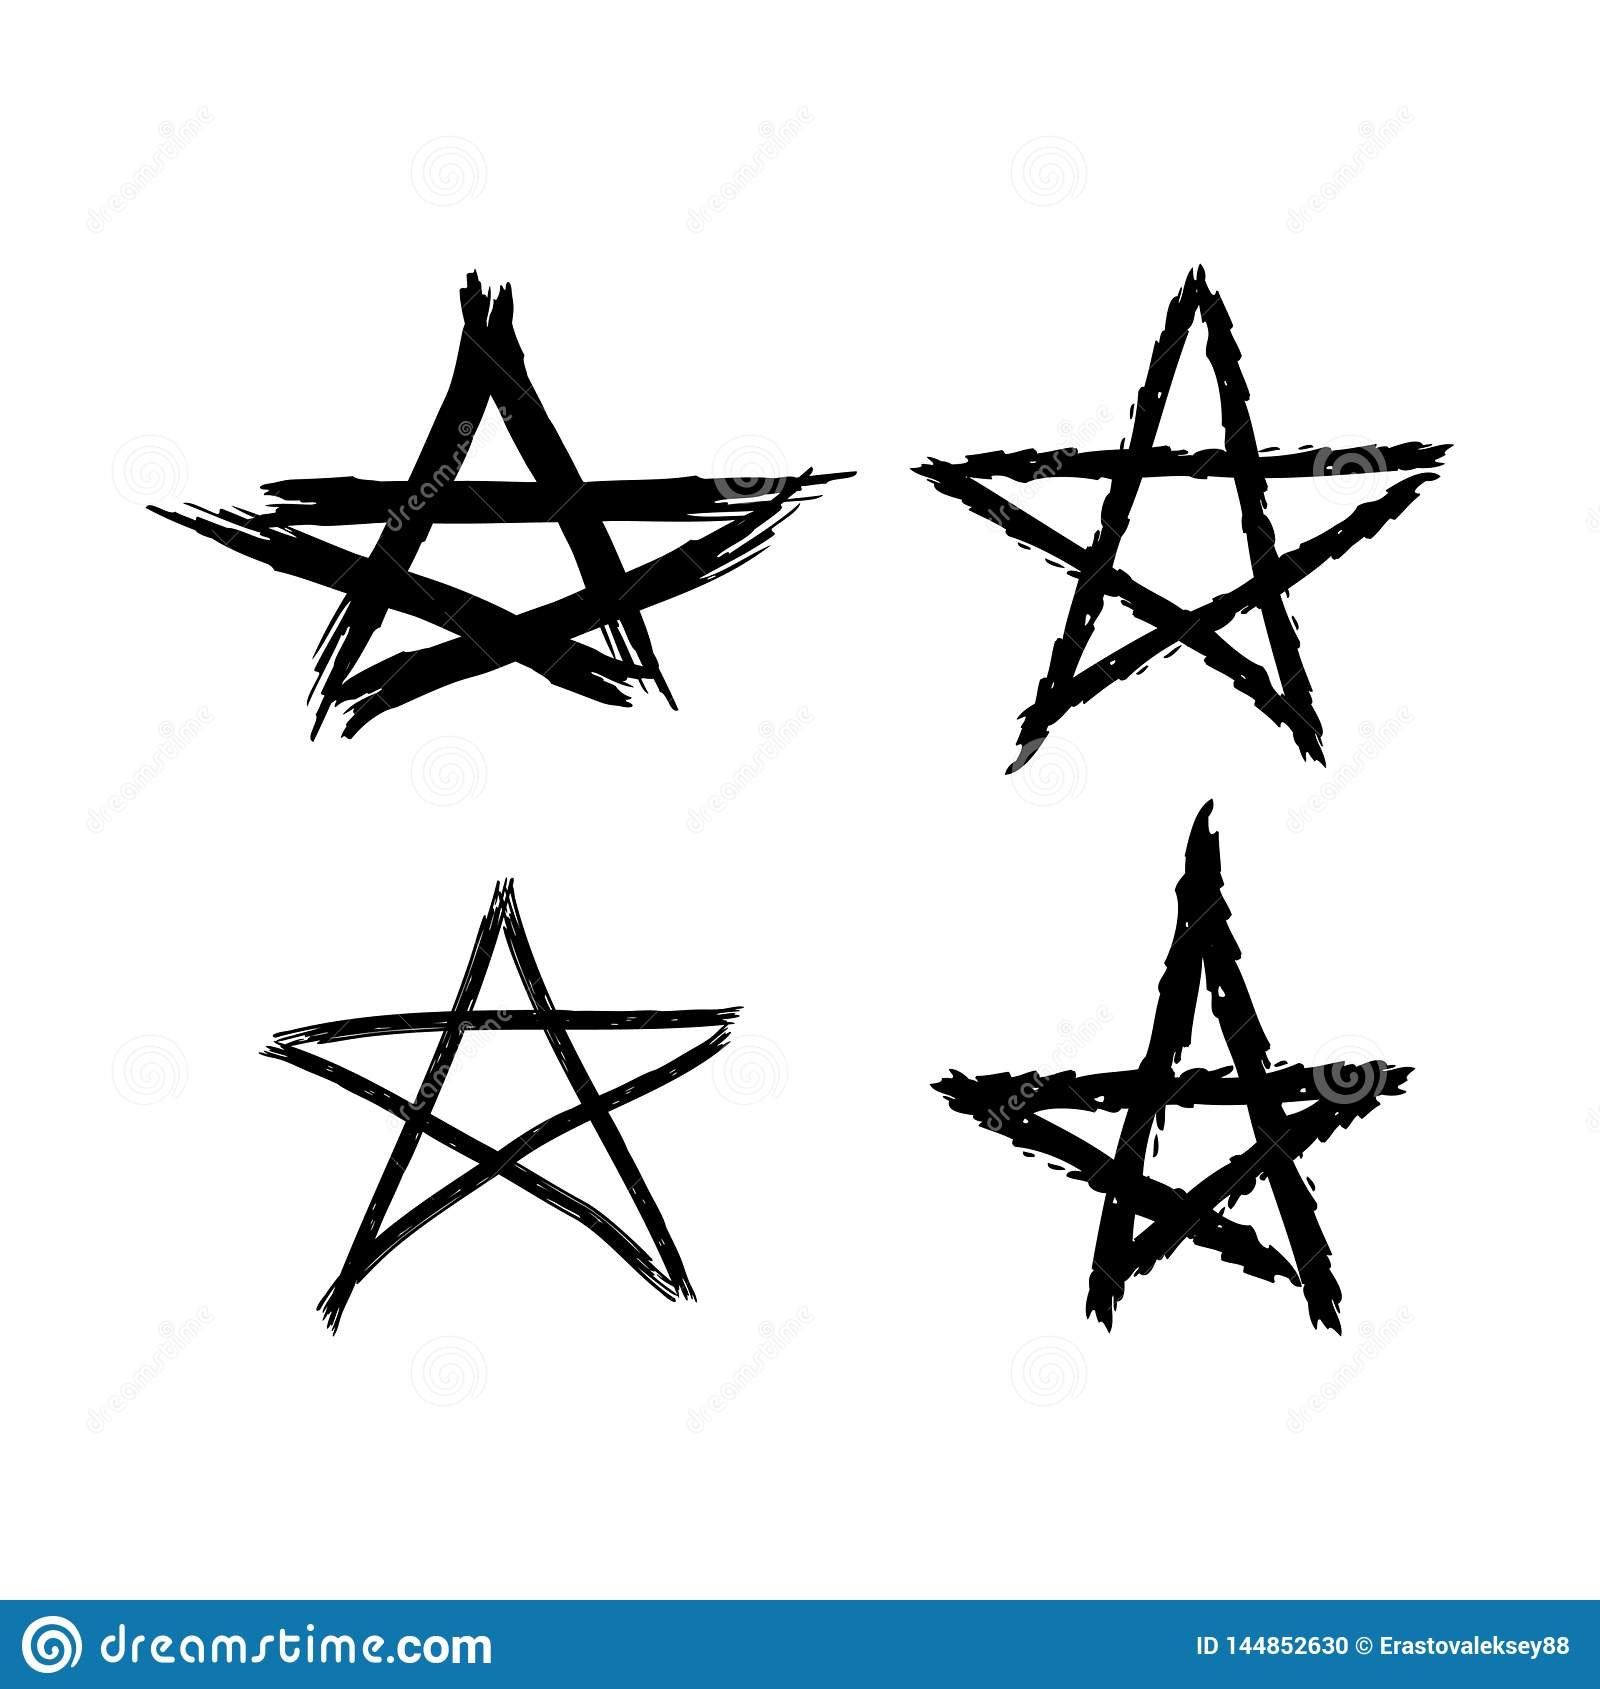 Set of grunge stars painted with rough brush. Black elements on a white background. Sketch, watercolor, graffiti.